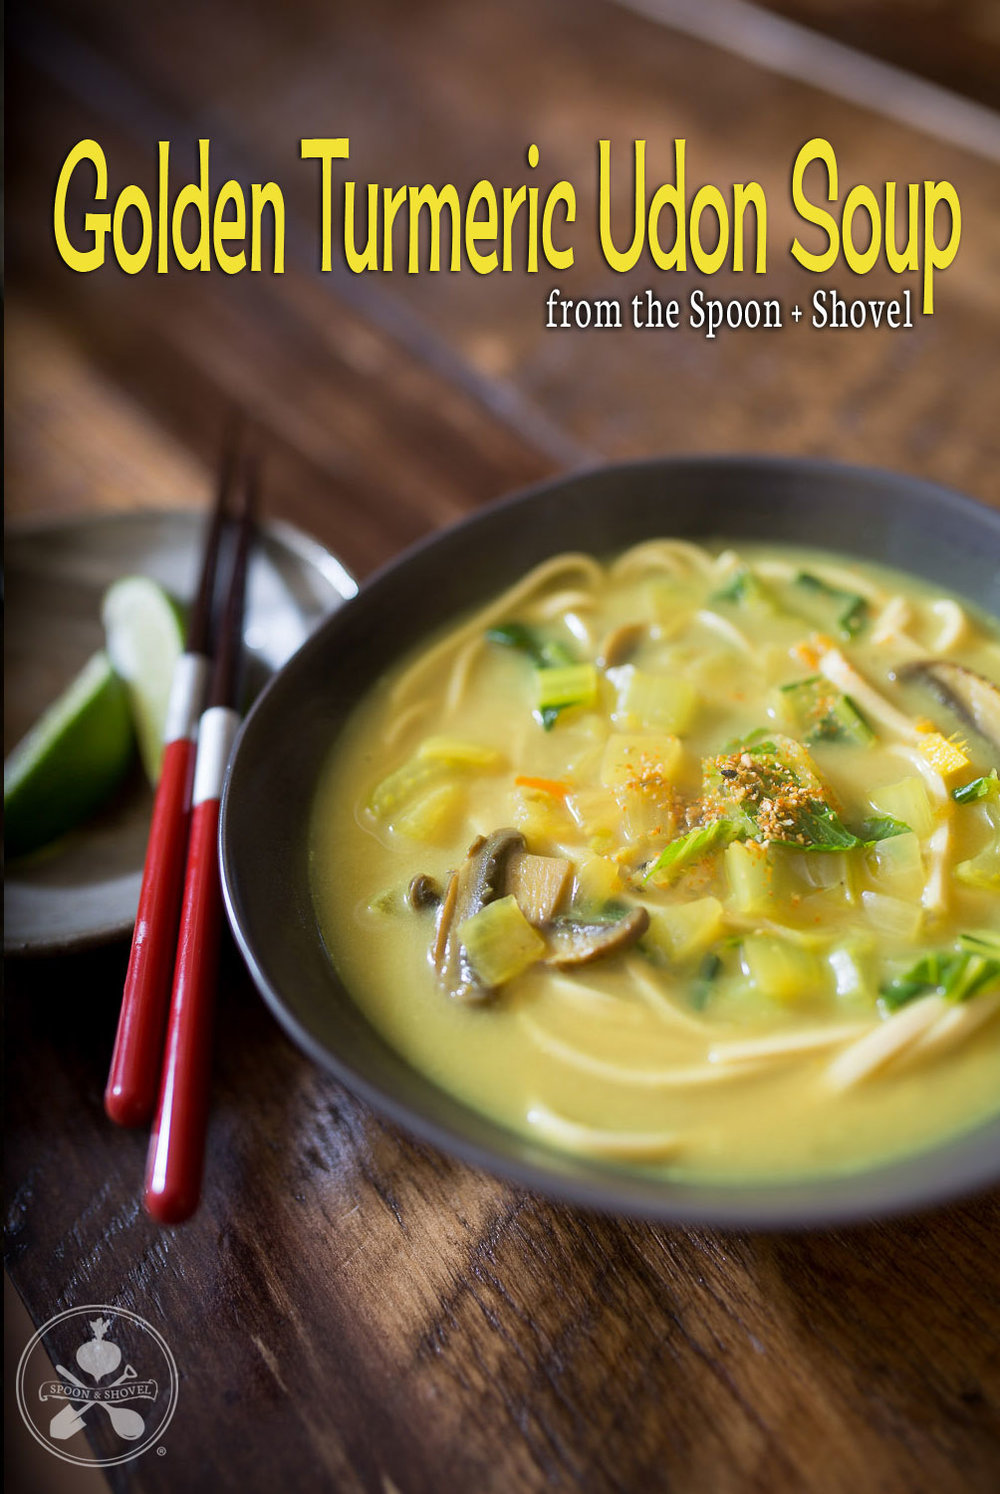 Golden turmeric udon soup w/ ginger, bok choy, mushrooms & coconut milk from The Spoon + Shovel